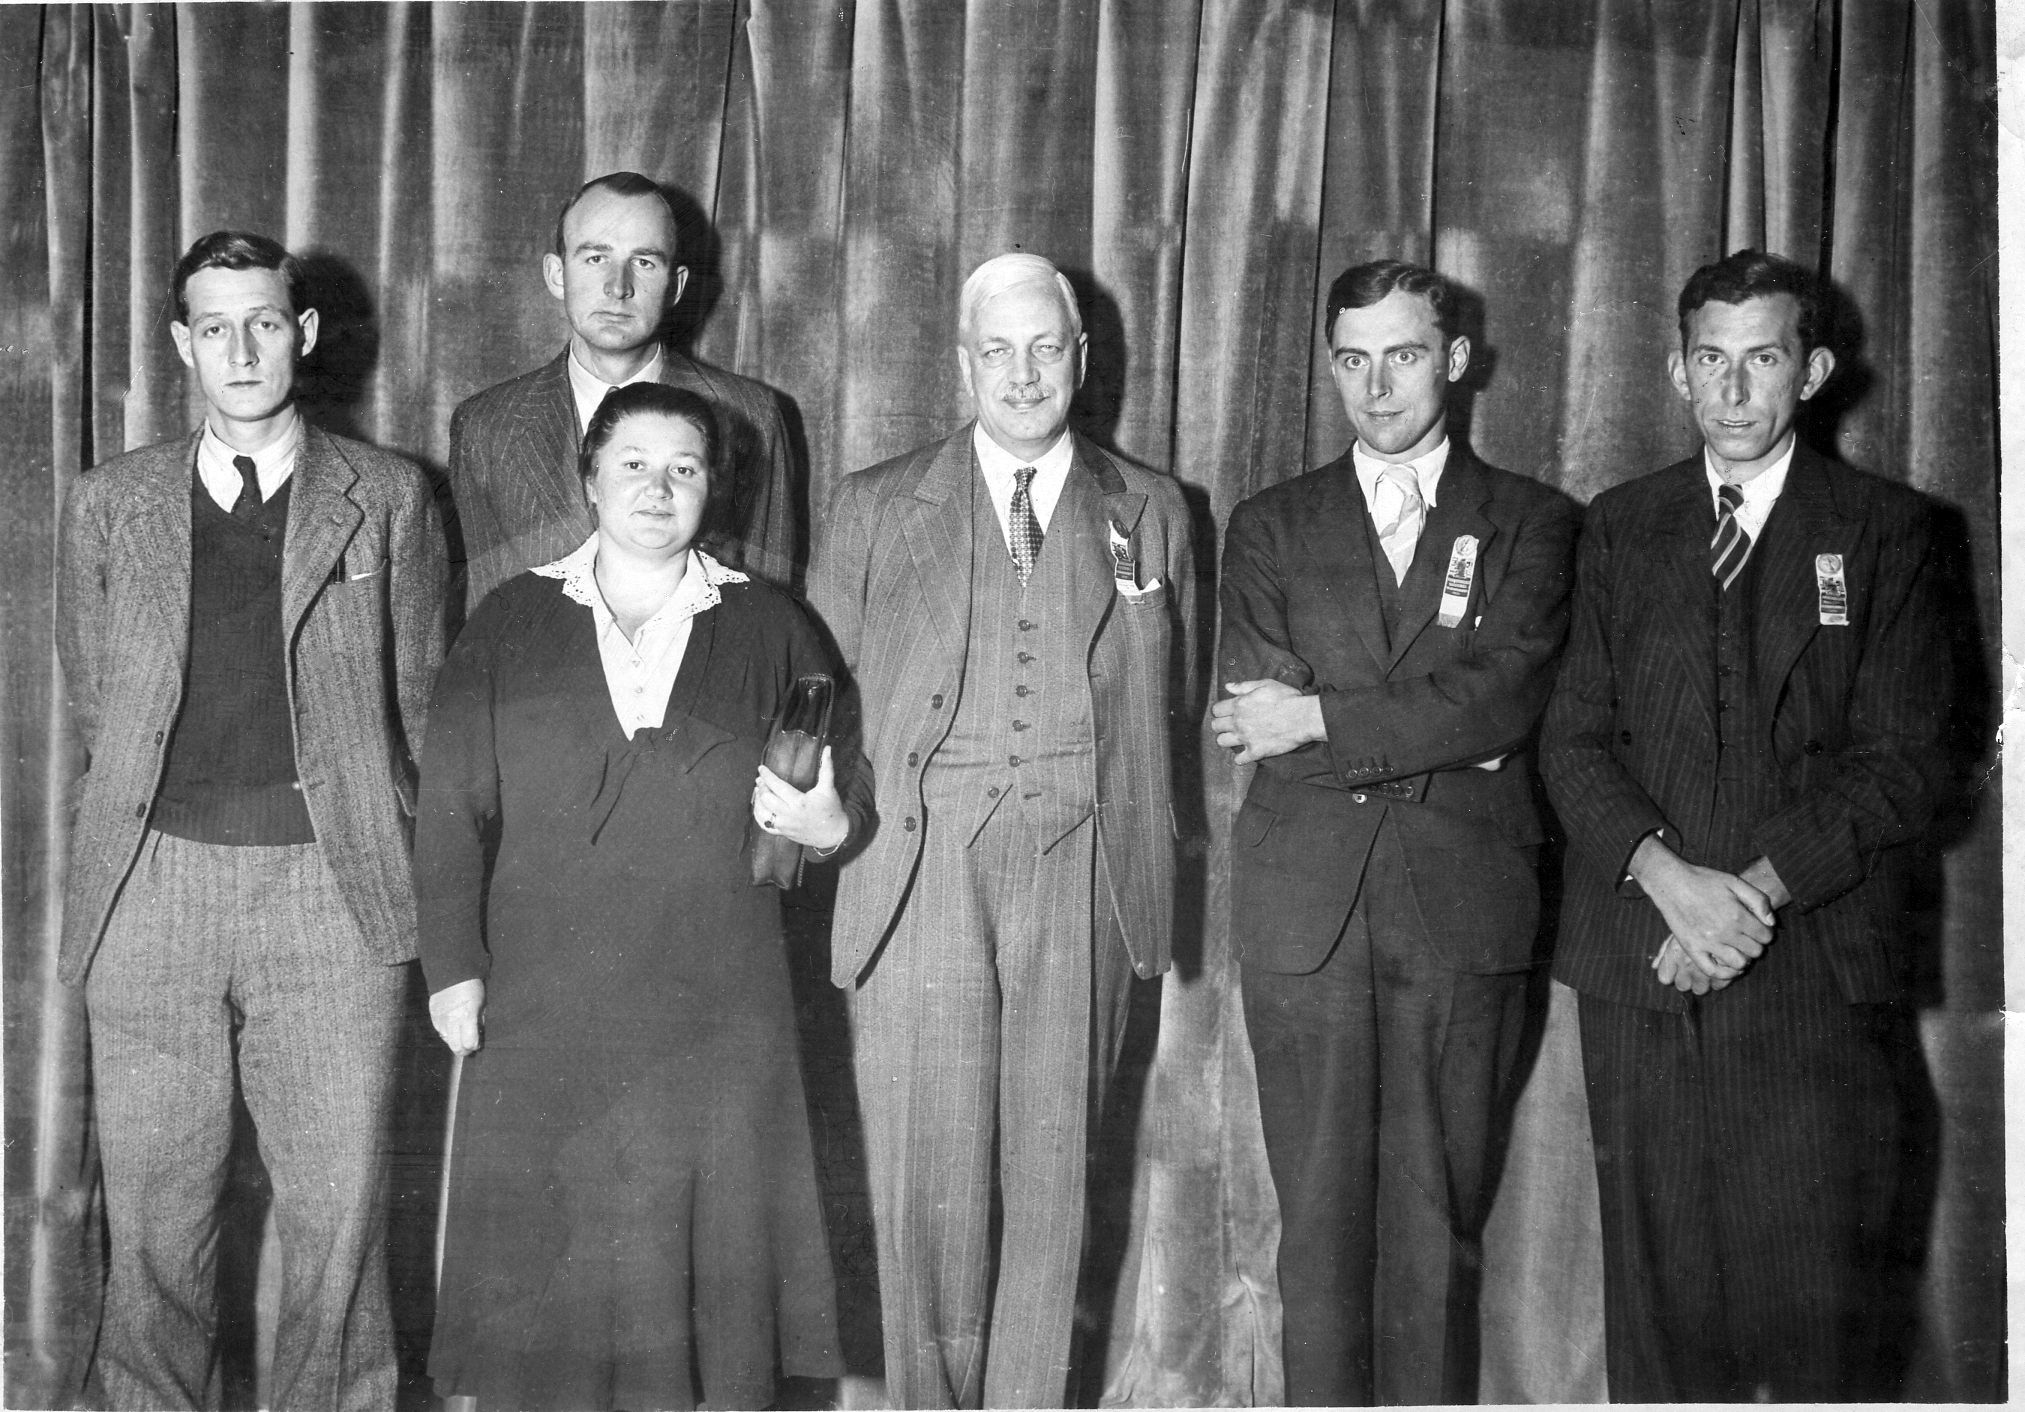 Left to right Baruch H Wood, Philip Stuart Milner-Barry, Vera Menchik (playing in the women's world championship held concurrently with the Olympiad which she won with 17 wins and 2 draws), Sir George Thomas, Conel Hugh O'Donel Alexander and Harry Golombek. England withdrew after their preliminary group due to the outbreak of war despite qualifying for the top final. Thanks to Leonard Barden